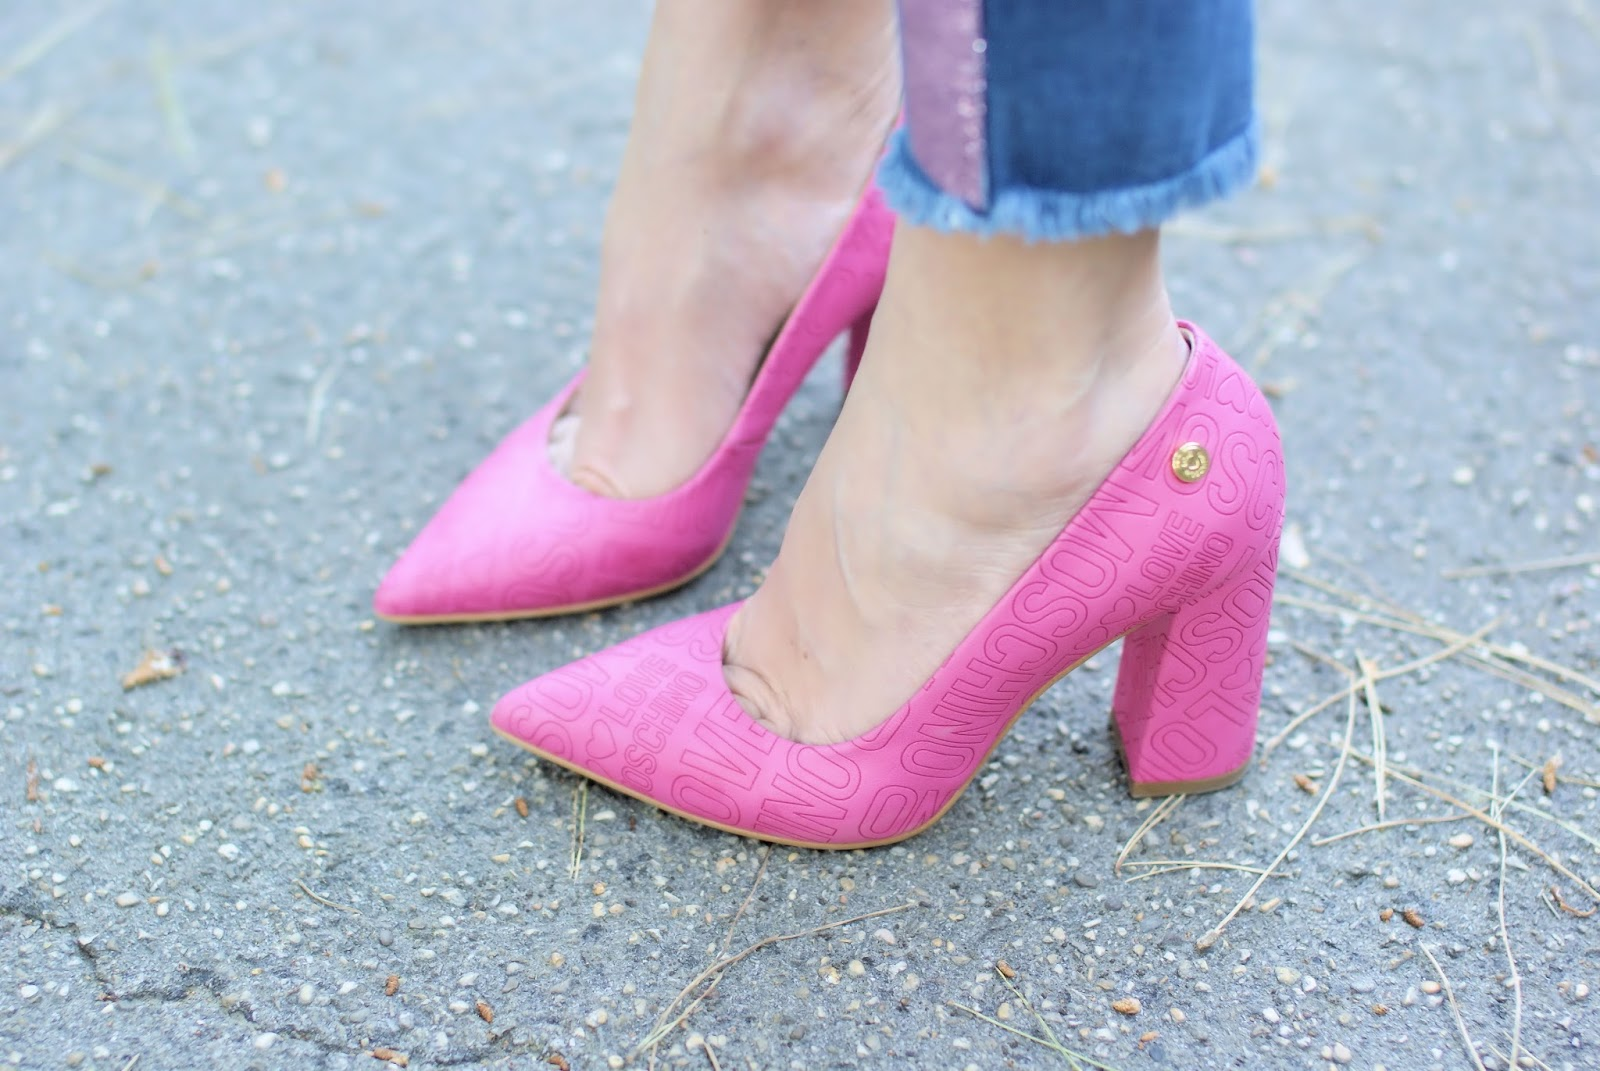 Love Moschino pink shoes on Fashion and Cookies fashion blog, fashion blogger style